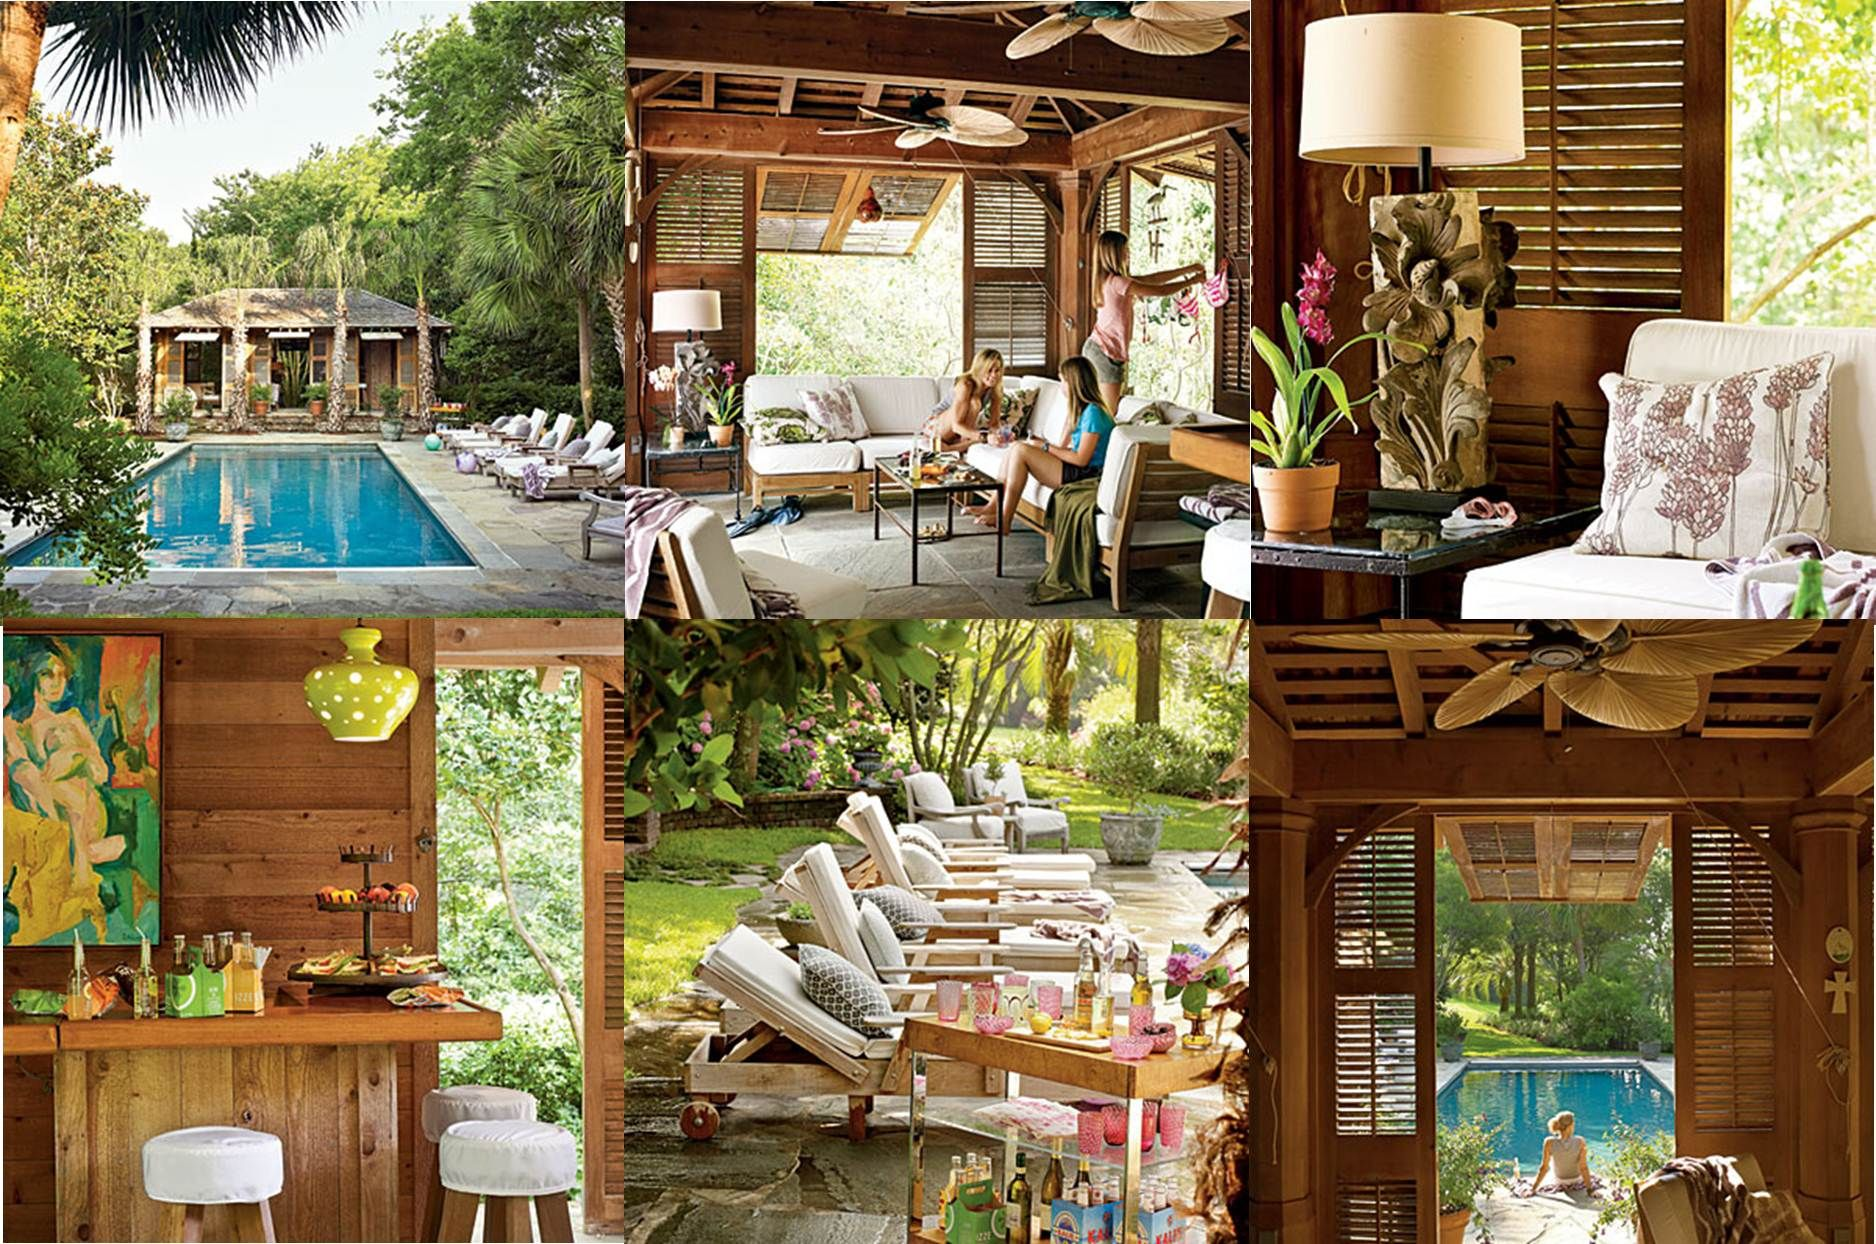 Dream Pool House Featured in Southern Living | Southern ... on Southern Pools And Outdoor Living id=67286